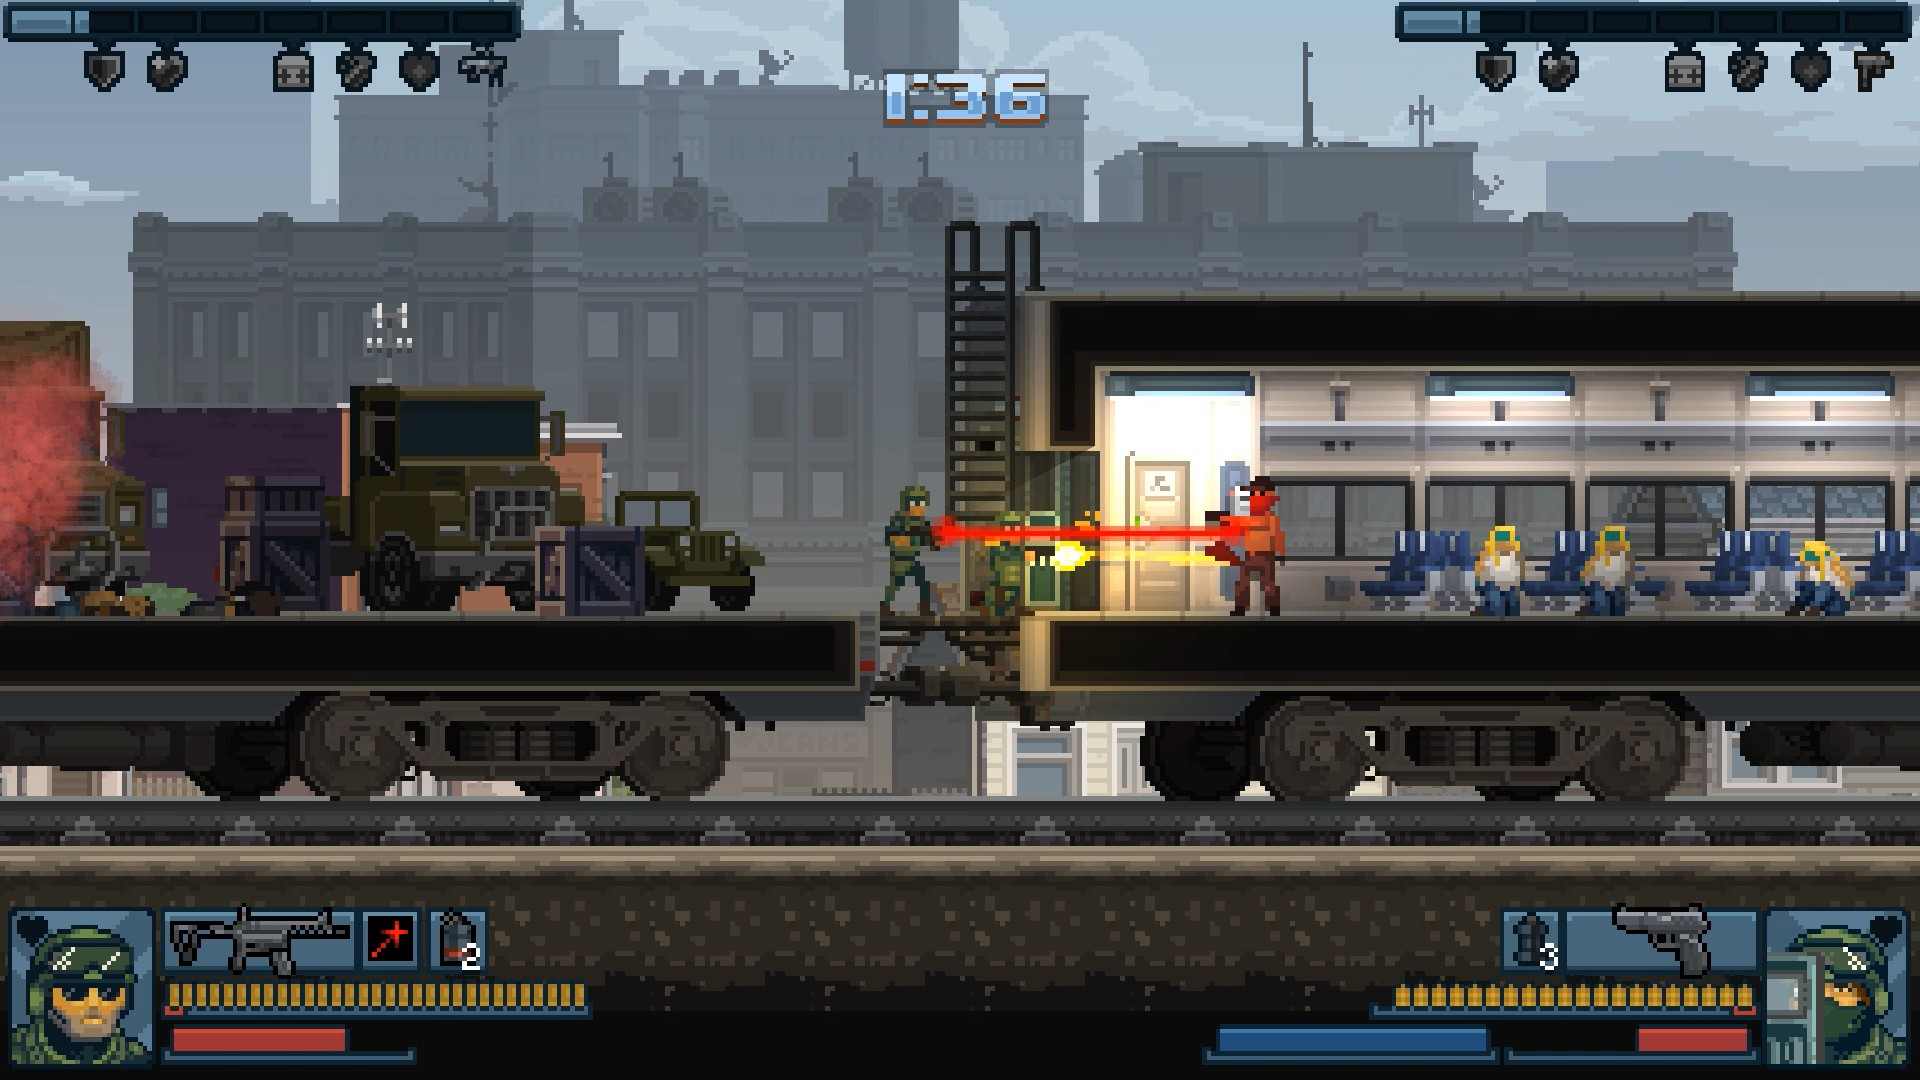 2D, Action, casual, Door Kickers: Action Squad, Door Kickers: Action Squad Review, indie, KillHouse Games, PC, PC Review, Pixel Graphics, PixelShard, Platformer, Rating 8/10, simulation, strategy, Tactical, Video Game, Video Game Review